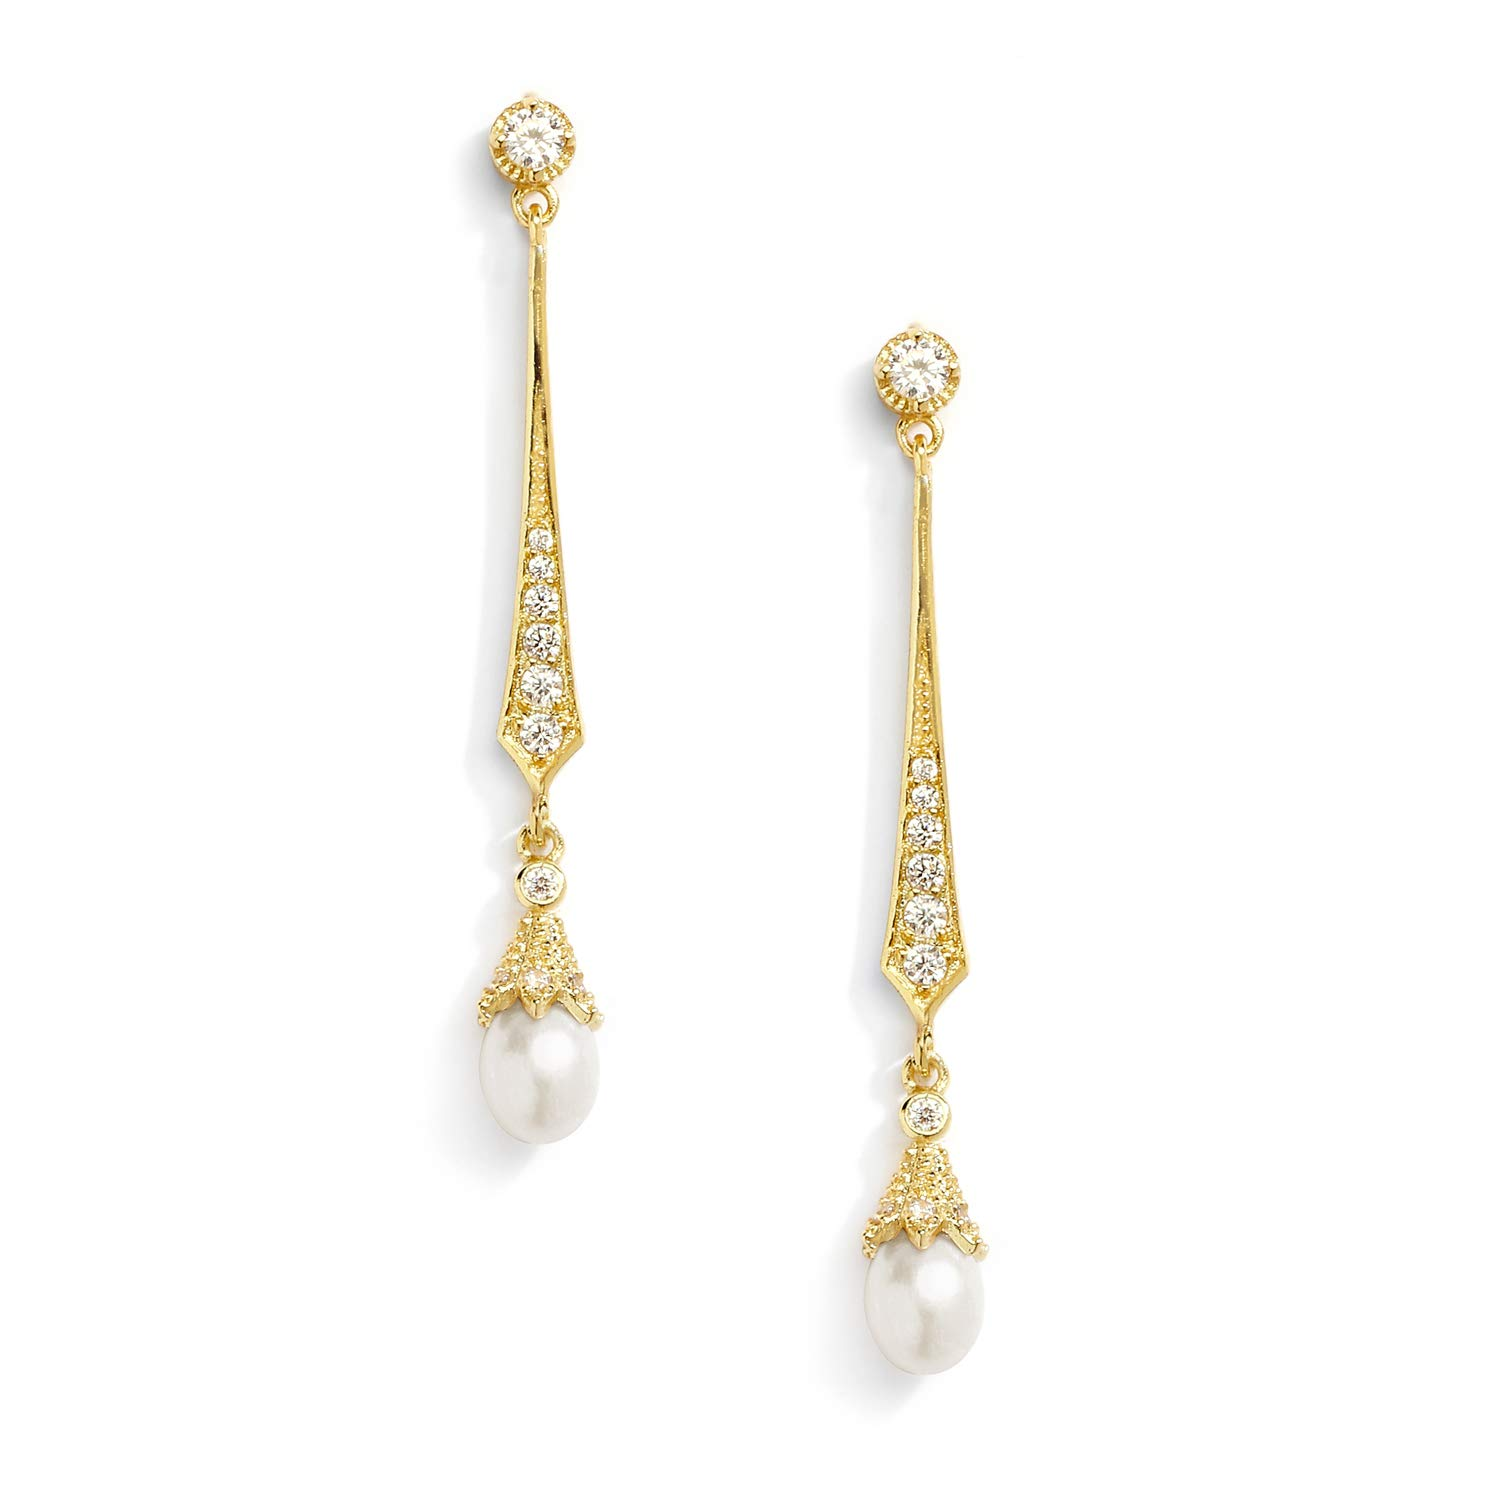 Mariell Slender 14K Gold CZ Vintage Dangle Earrings with Freshwater Pearl Drops - Bridal Wedding Style